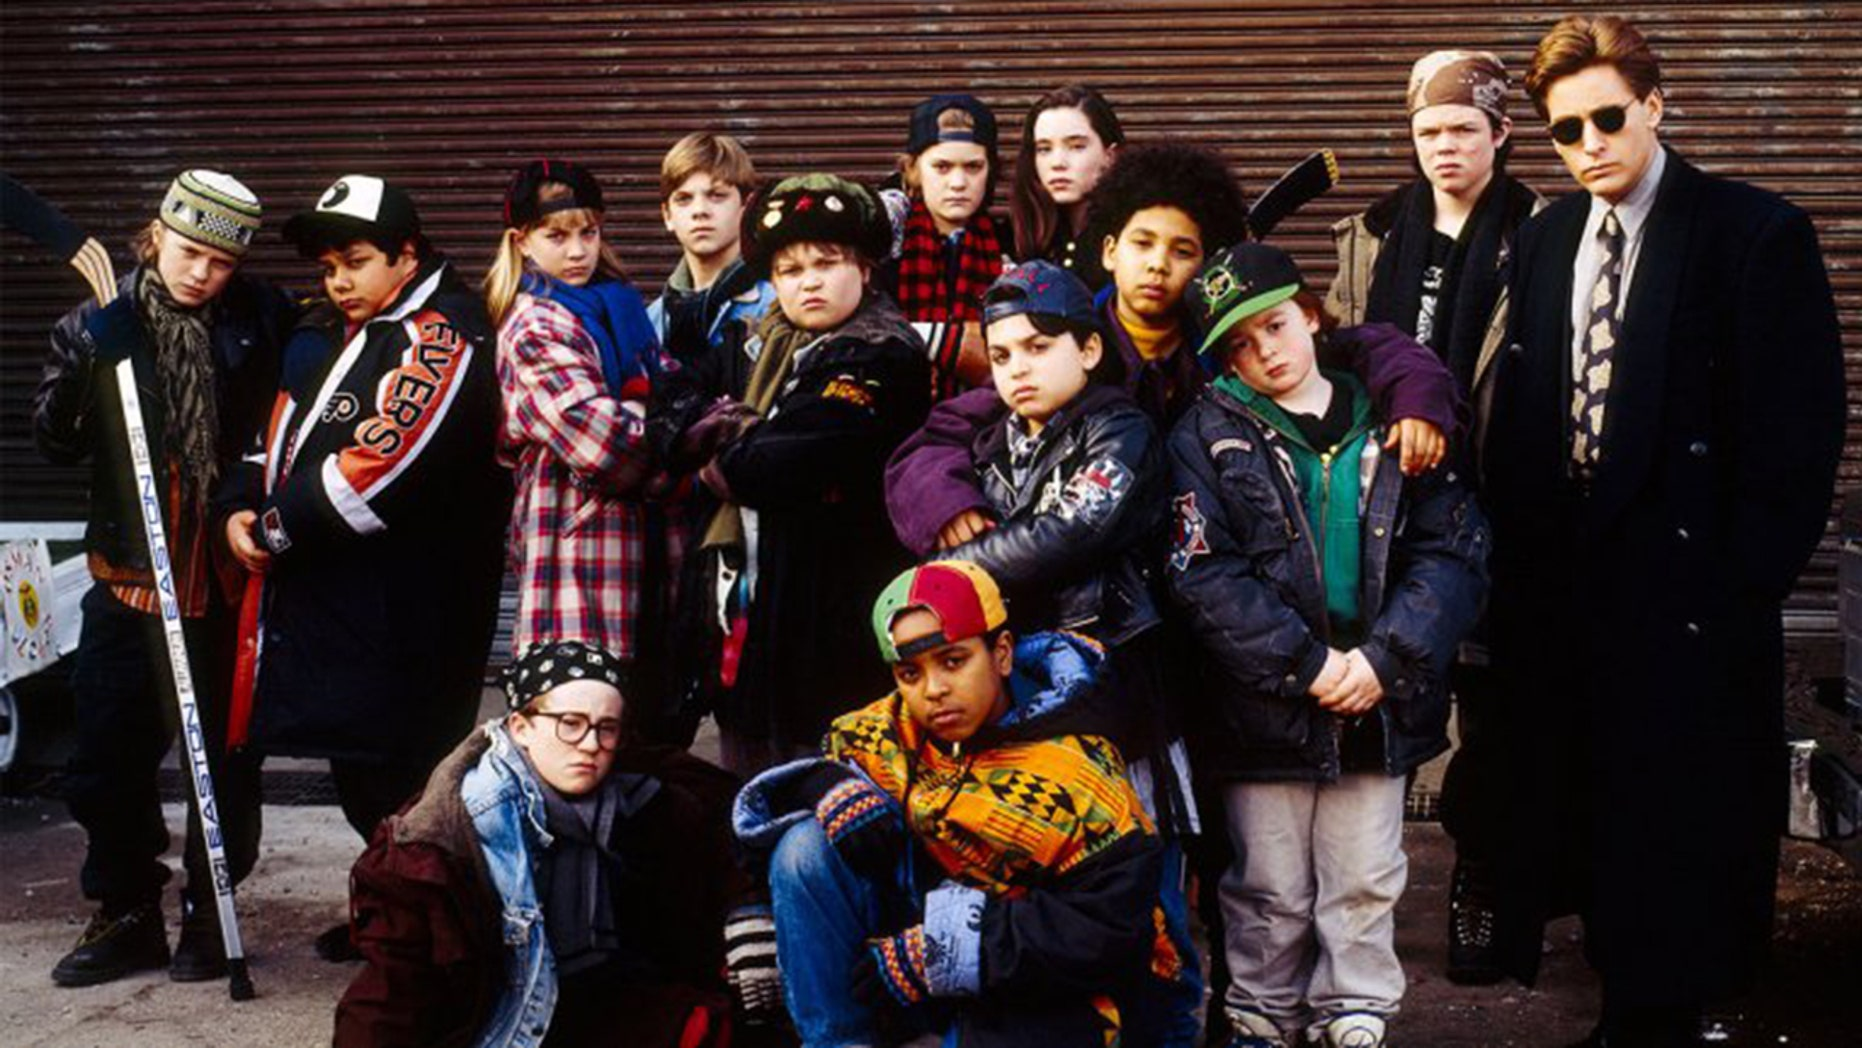 """The Mighty Ducks"" was released in 1992."